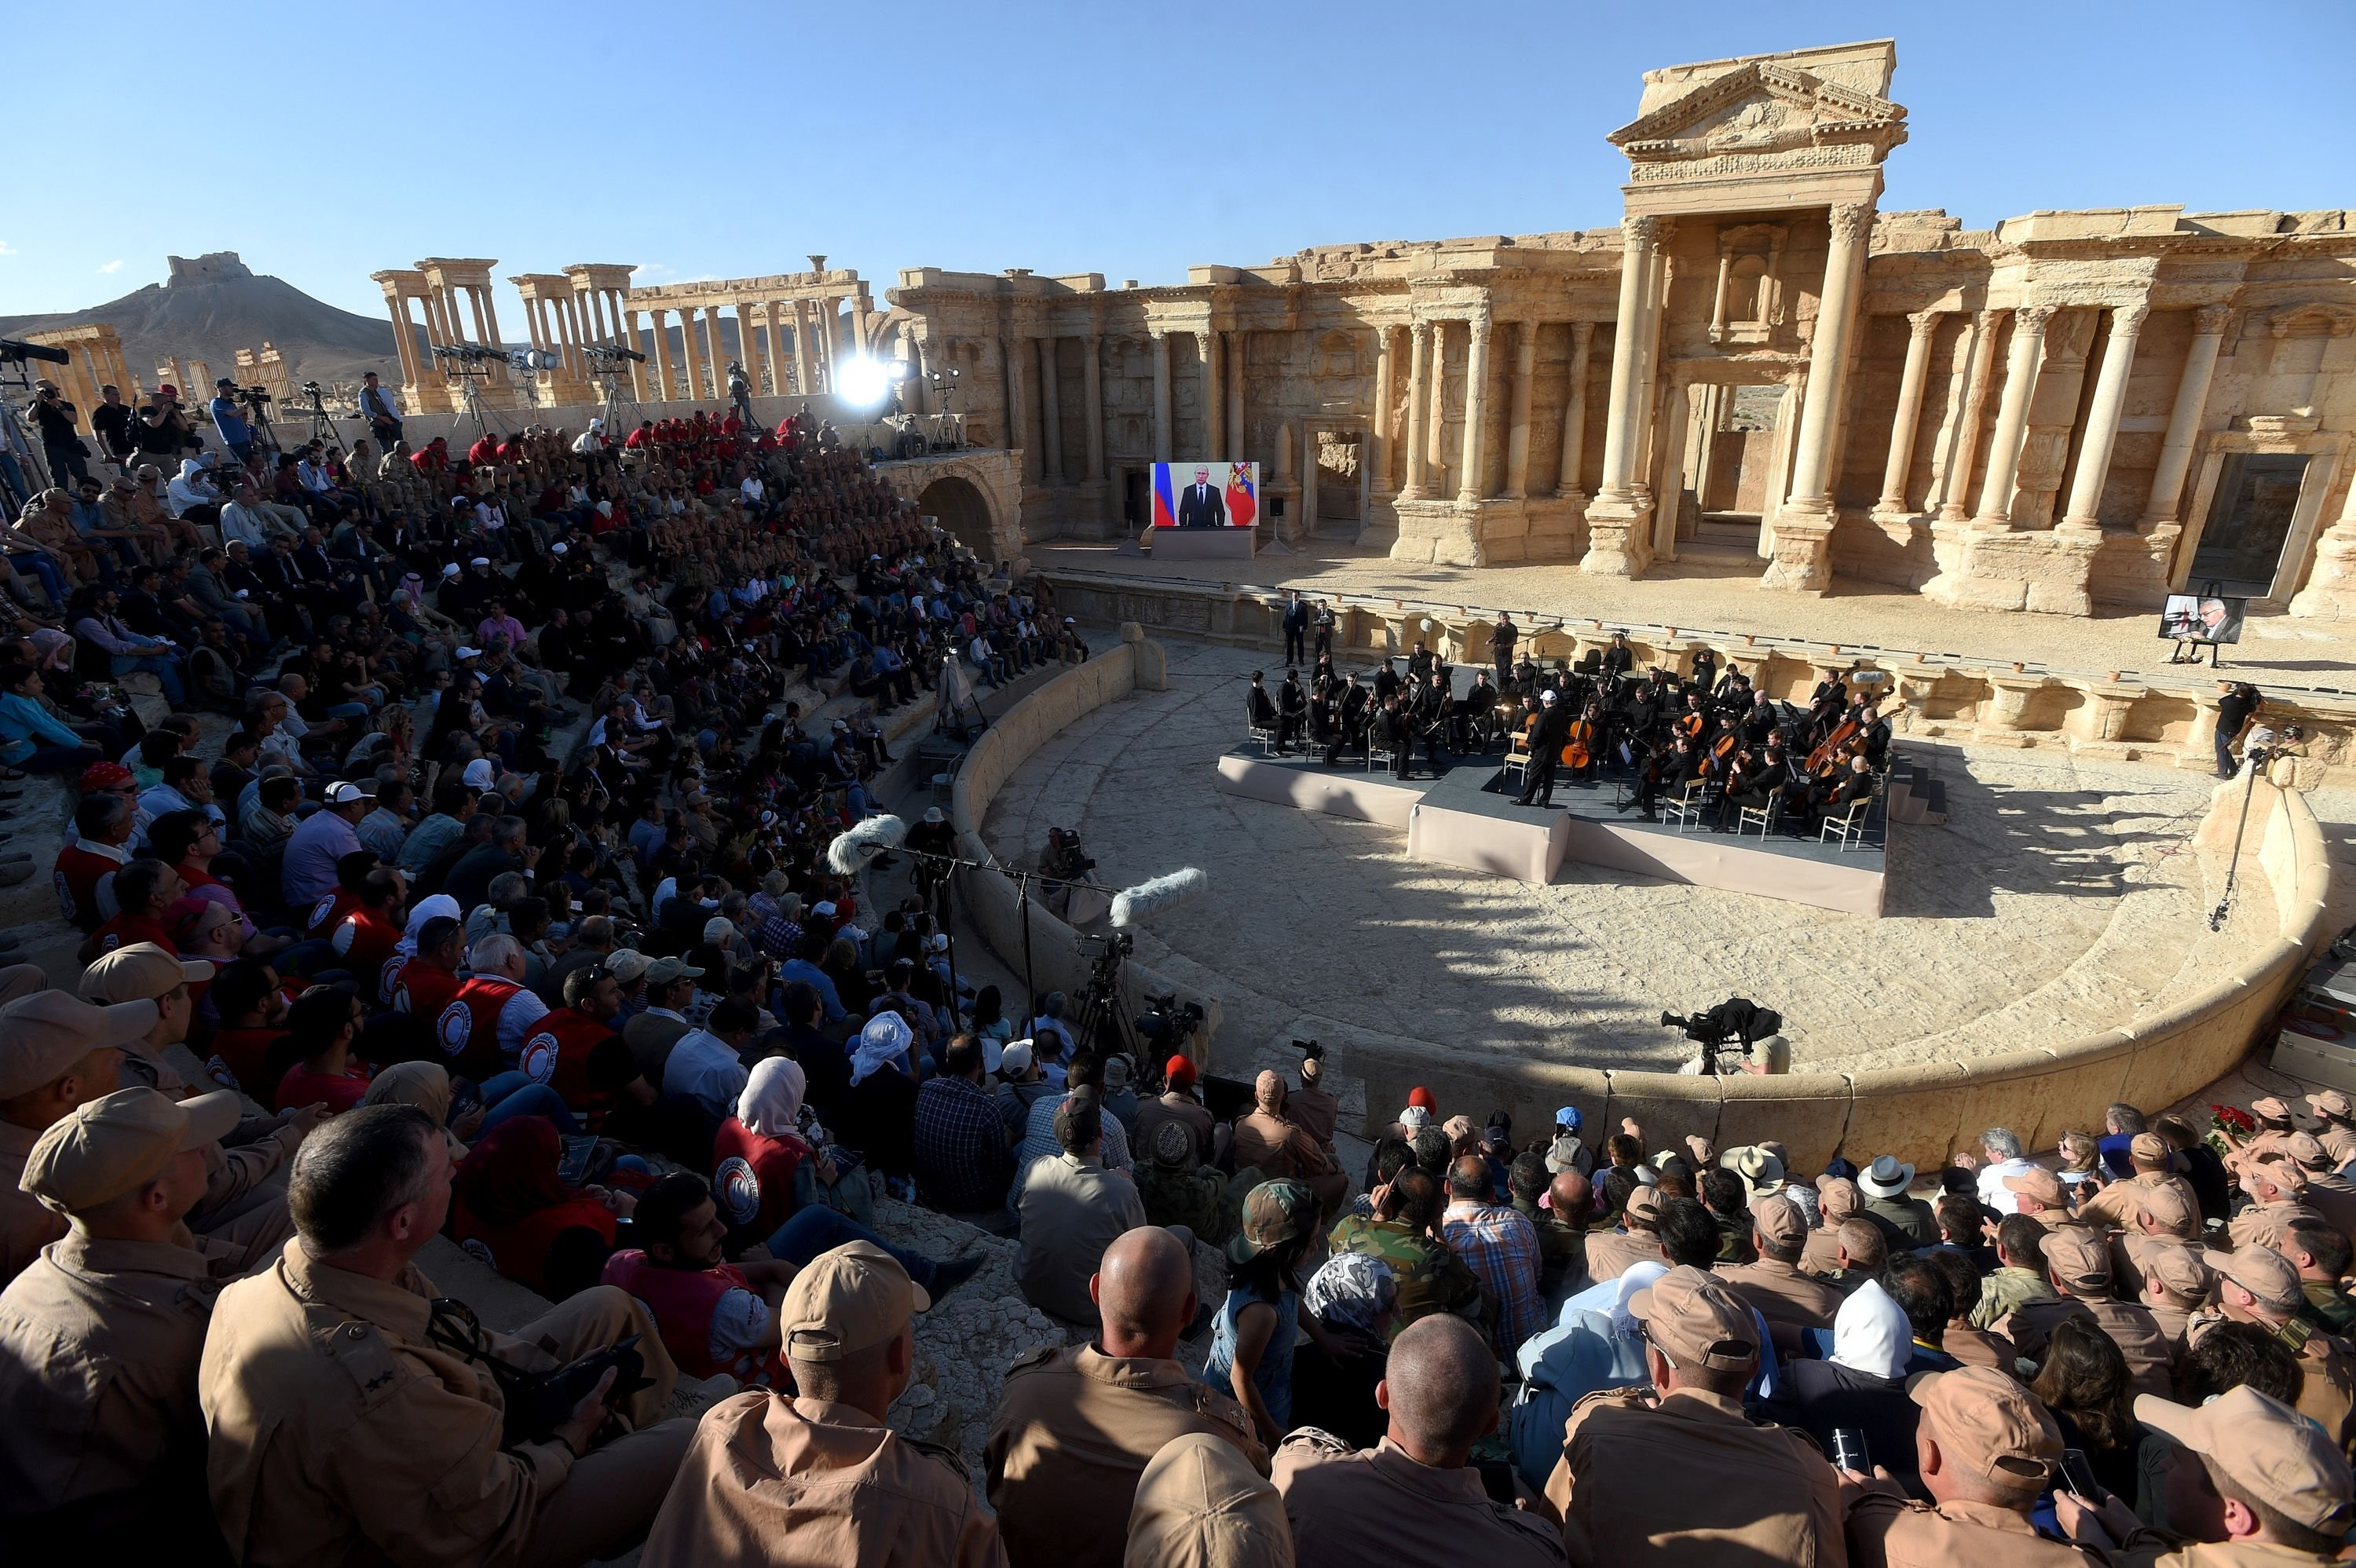 Russian conductor Valery Gergiev leads a concert by the Mariinsky Theater Orchestra in the amphitheatre of the ancient city of Palmyra on May 5, 2016.